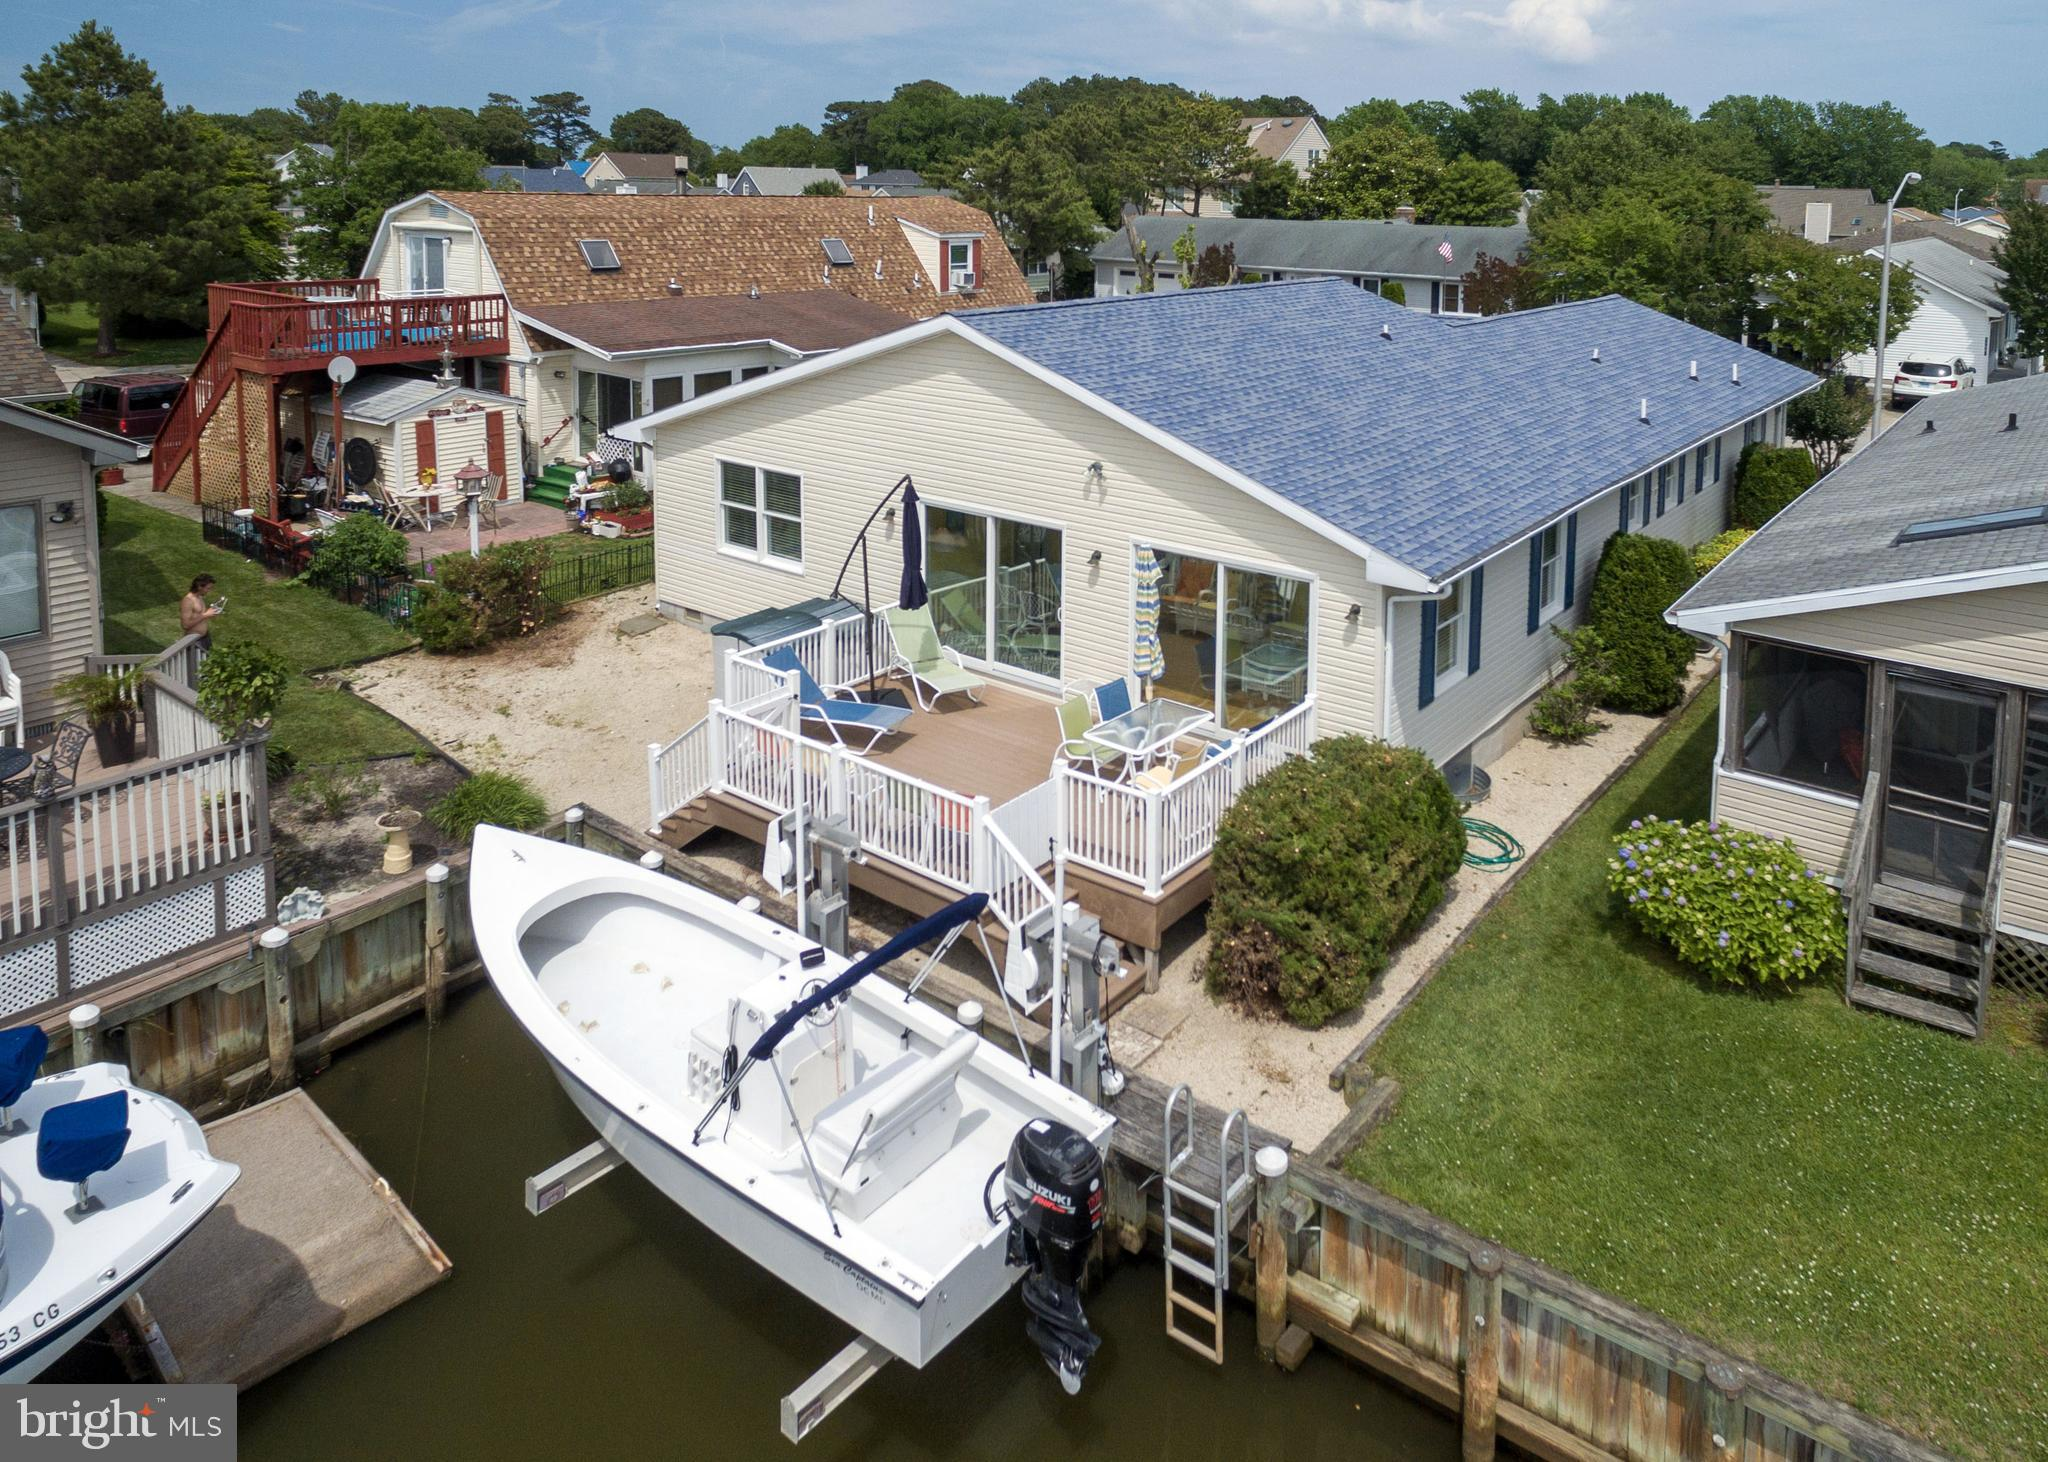 BAY FRONT LIVING IN THE SERENE COMMUNITY OF CAINE WOODS WITH PRIVATE 5,000 LB BOATLIFT! Great multifamily beach home has an expansive floor plan with fantastic views of the Assawoman Bay from several rooms. Both queen sofas are sleepers and the bunk beds have trundles, so there is plenty of space for all!  Boast 5 bedrooms and 4 full baths, two master suites, with one being bay front and a junior master w/ attached bath.  Relax in the bright and over sized sun room with 2 upgraded 9' Anderson Storm sliding doors providing plenty of natural light to shine through. The kitchen has upgraded Silestone counter tops,  stainless steel refrigerator, corner kitchen island seating,  and a breakfast nook. Spend the day soaking up the sun on the grand bay front  rear deck in the telescope chairs & lounges that convey, or head to beach only a short drive away.  Covered carport has room for 4 mid-size vehicles as well as plenty of off street parking. Very low maintenance yard, poly crawl space in good condition, and the  storage shed conveys! This location is quiet and family friendly, great for walking or riding bikes, and has it's own dog park. Option to purchase boat with new trailer, ask agent for details.  Pride of ownership is immediately noticed as you step inside, call to make your appointment to see for yourself!